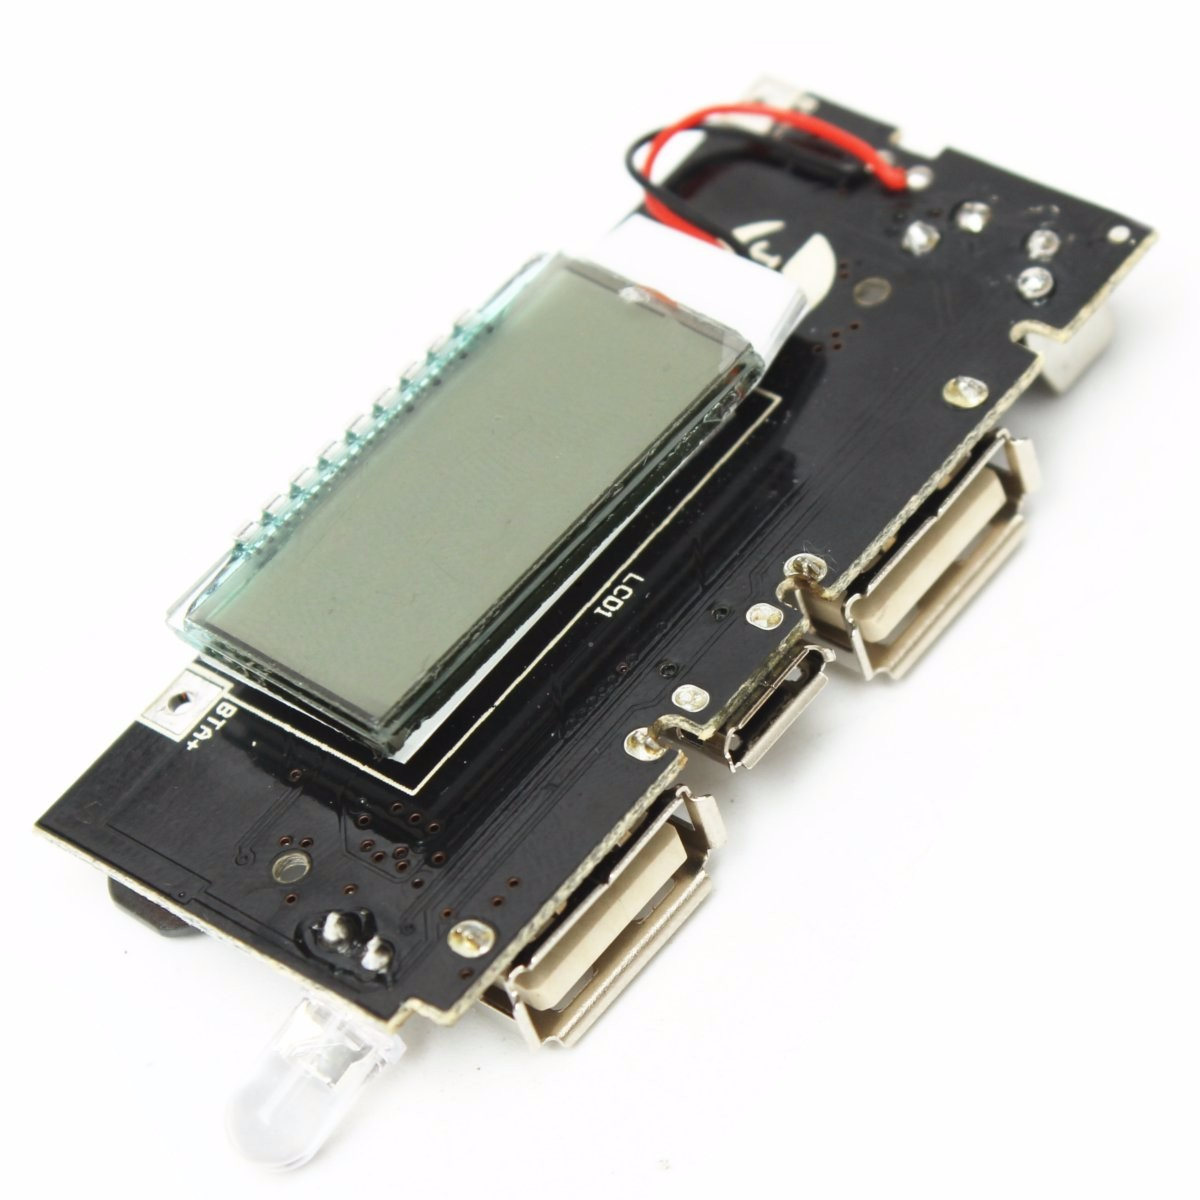 Results Of Top Mobile Charger Circuit In Hairstyle2018 Phone Battery 2pcs Dual Usb 5v 1a 21a Power Bank 18650 Pcb Module Accessories For Integrated Circuits